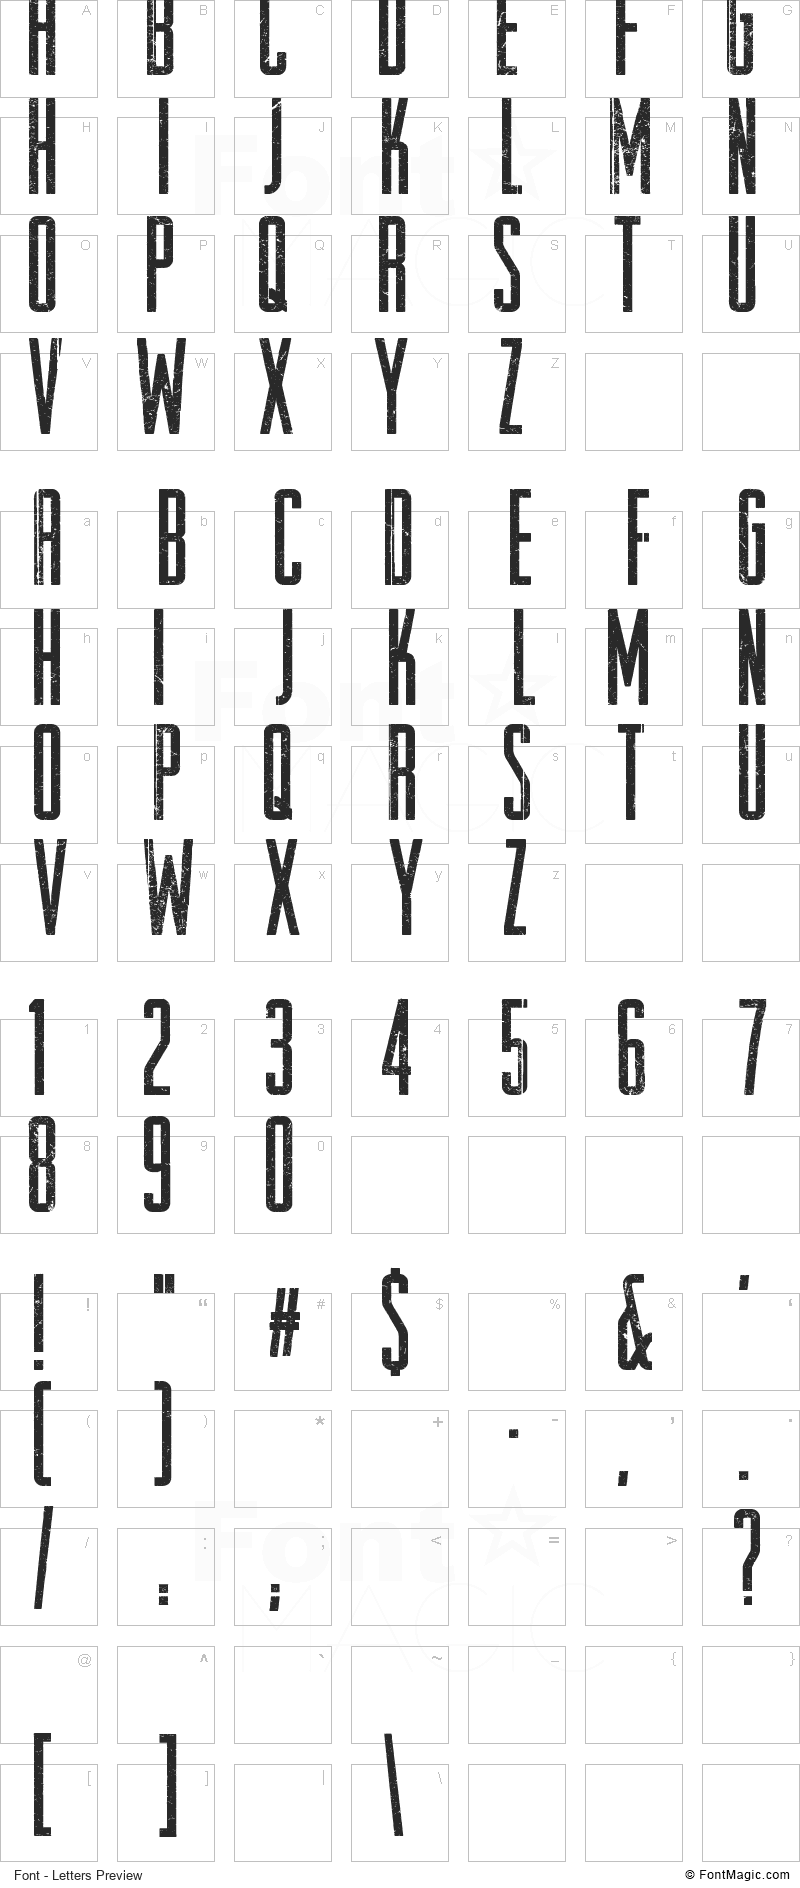 Raleigh Rock Font - All Latters Preview Chart